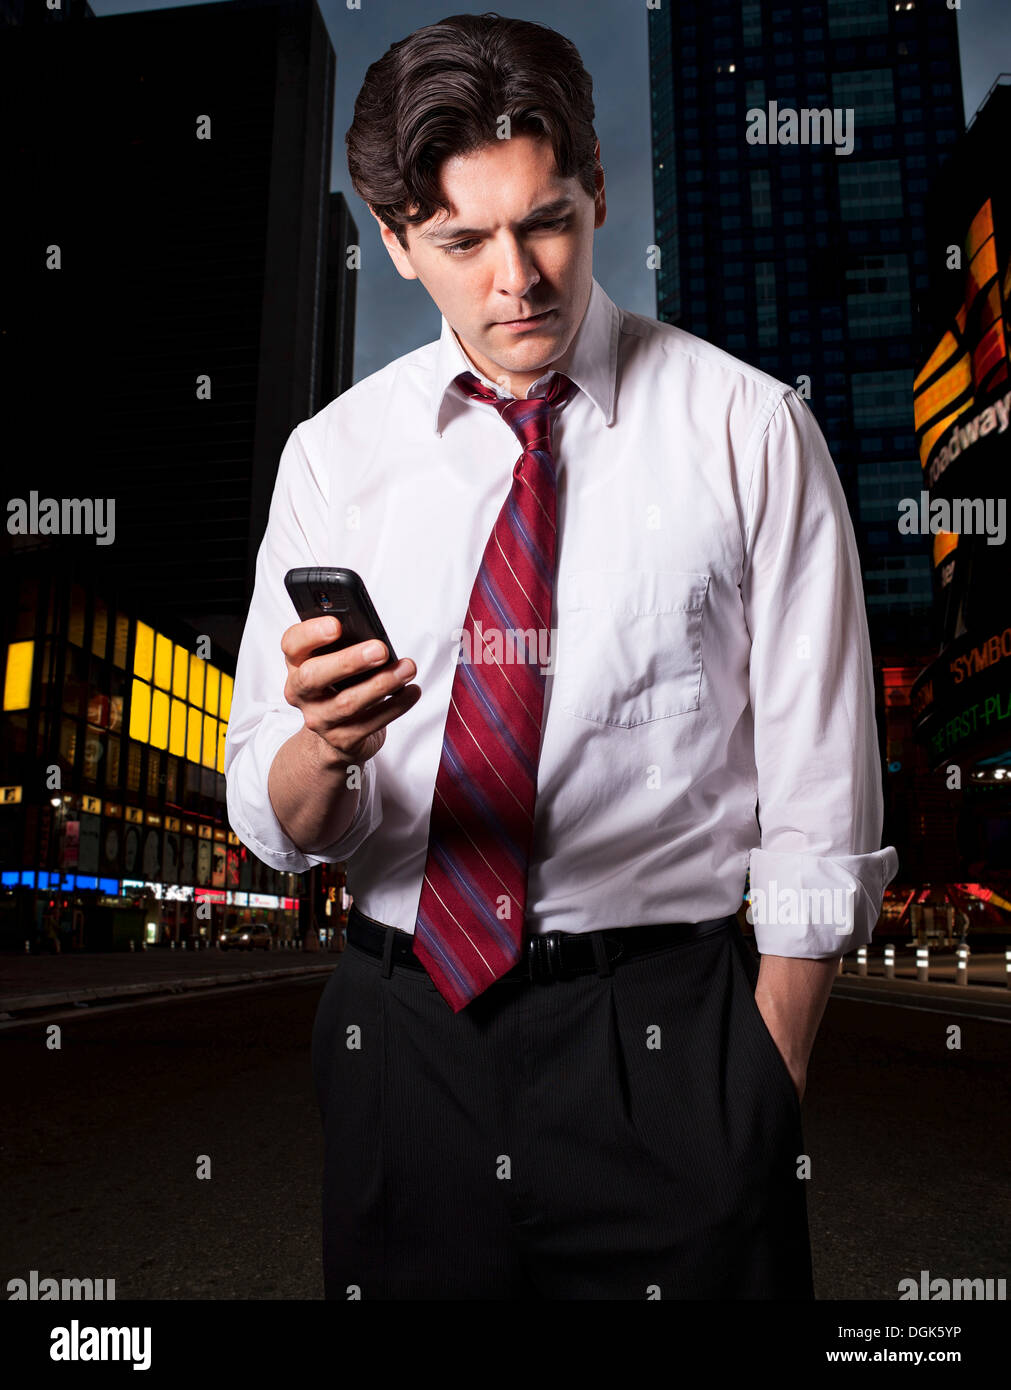 Stressed businessman in city with smartphone - Stock Image